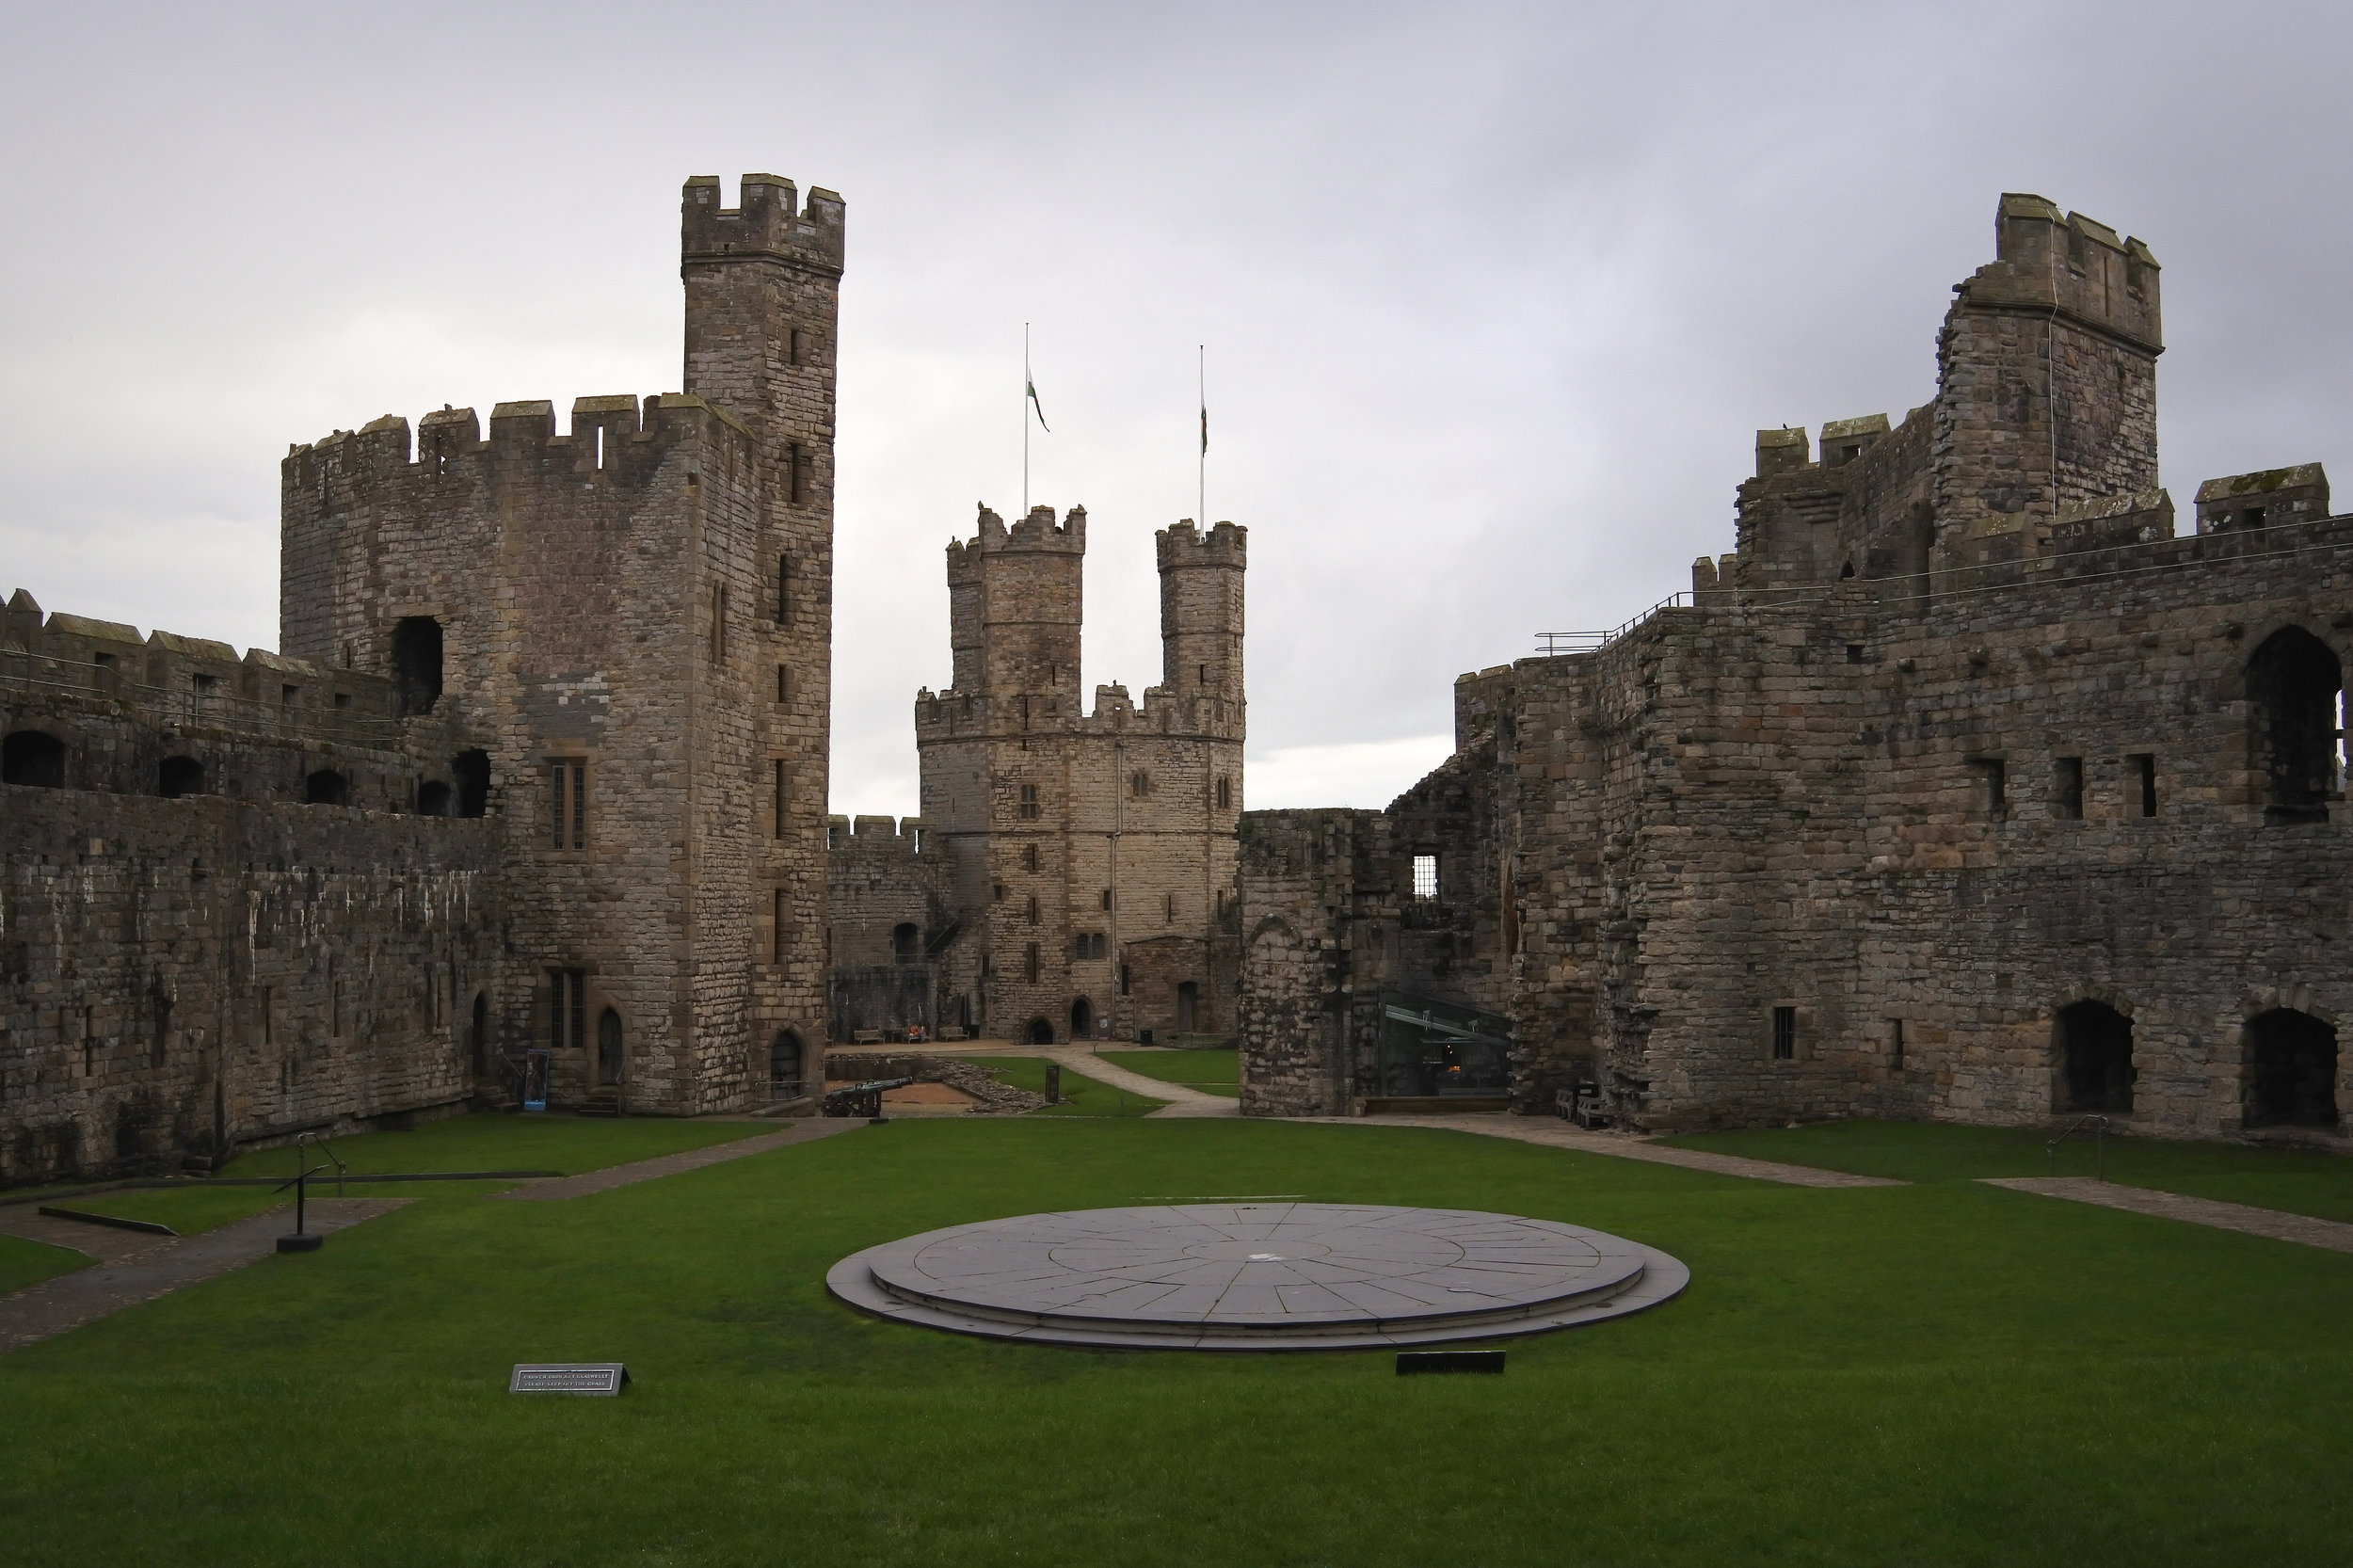 View of Caernarfon Castle.